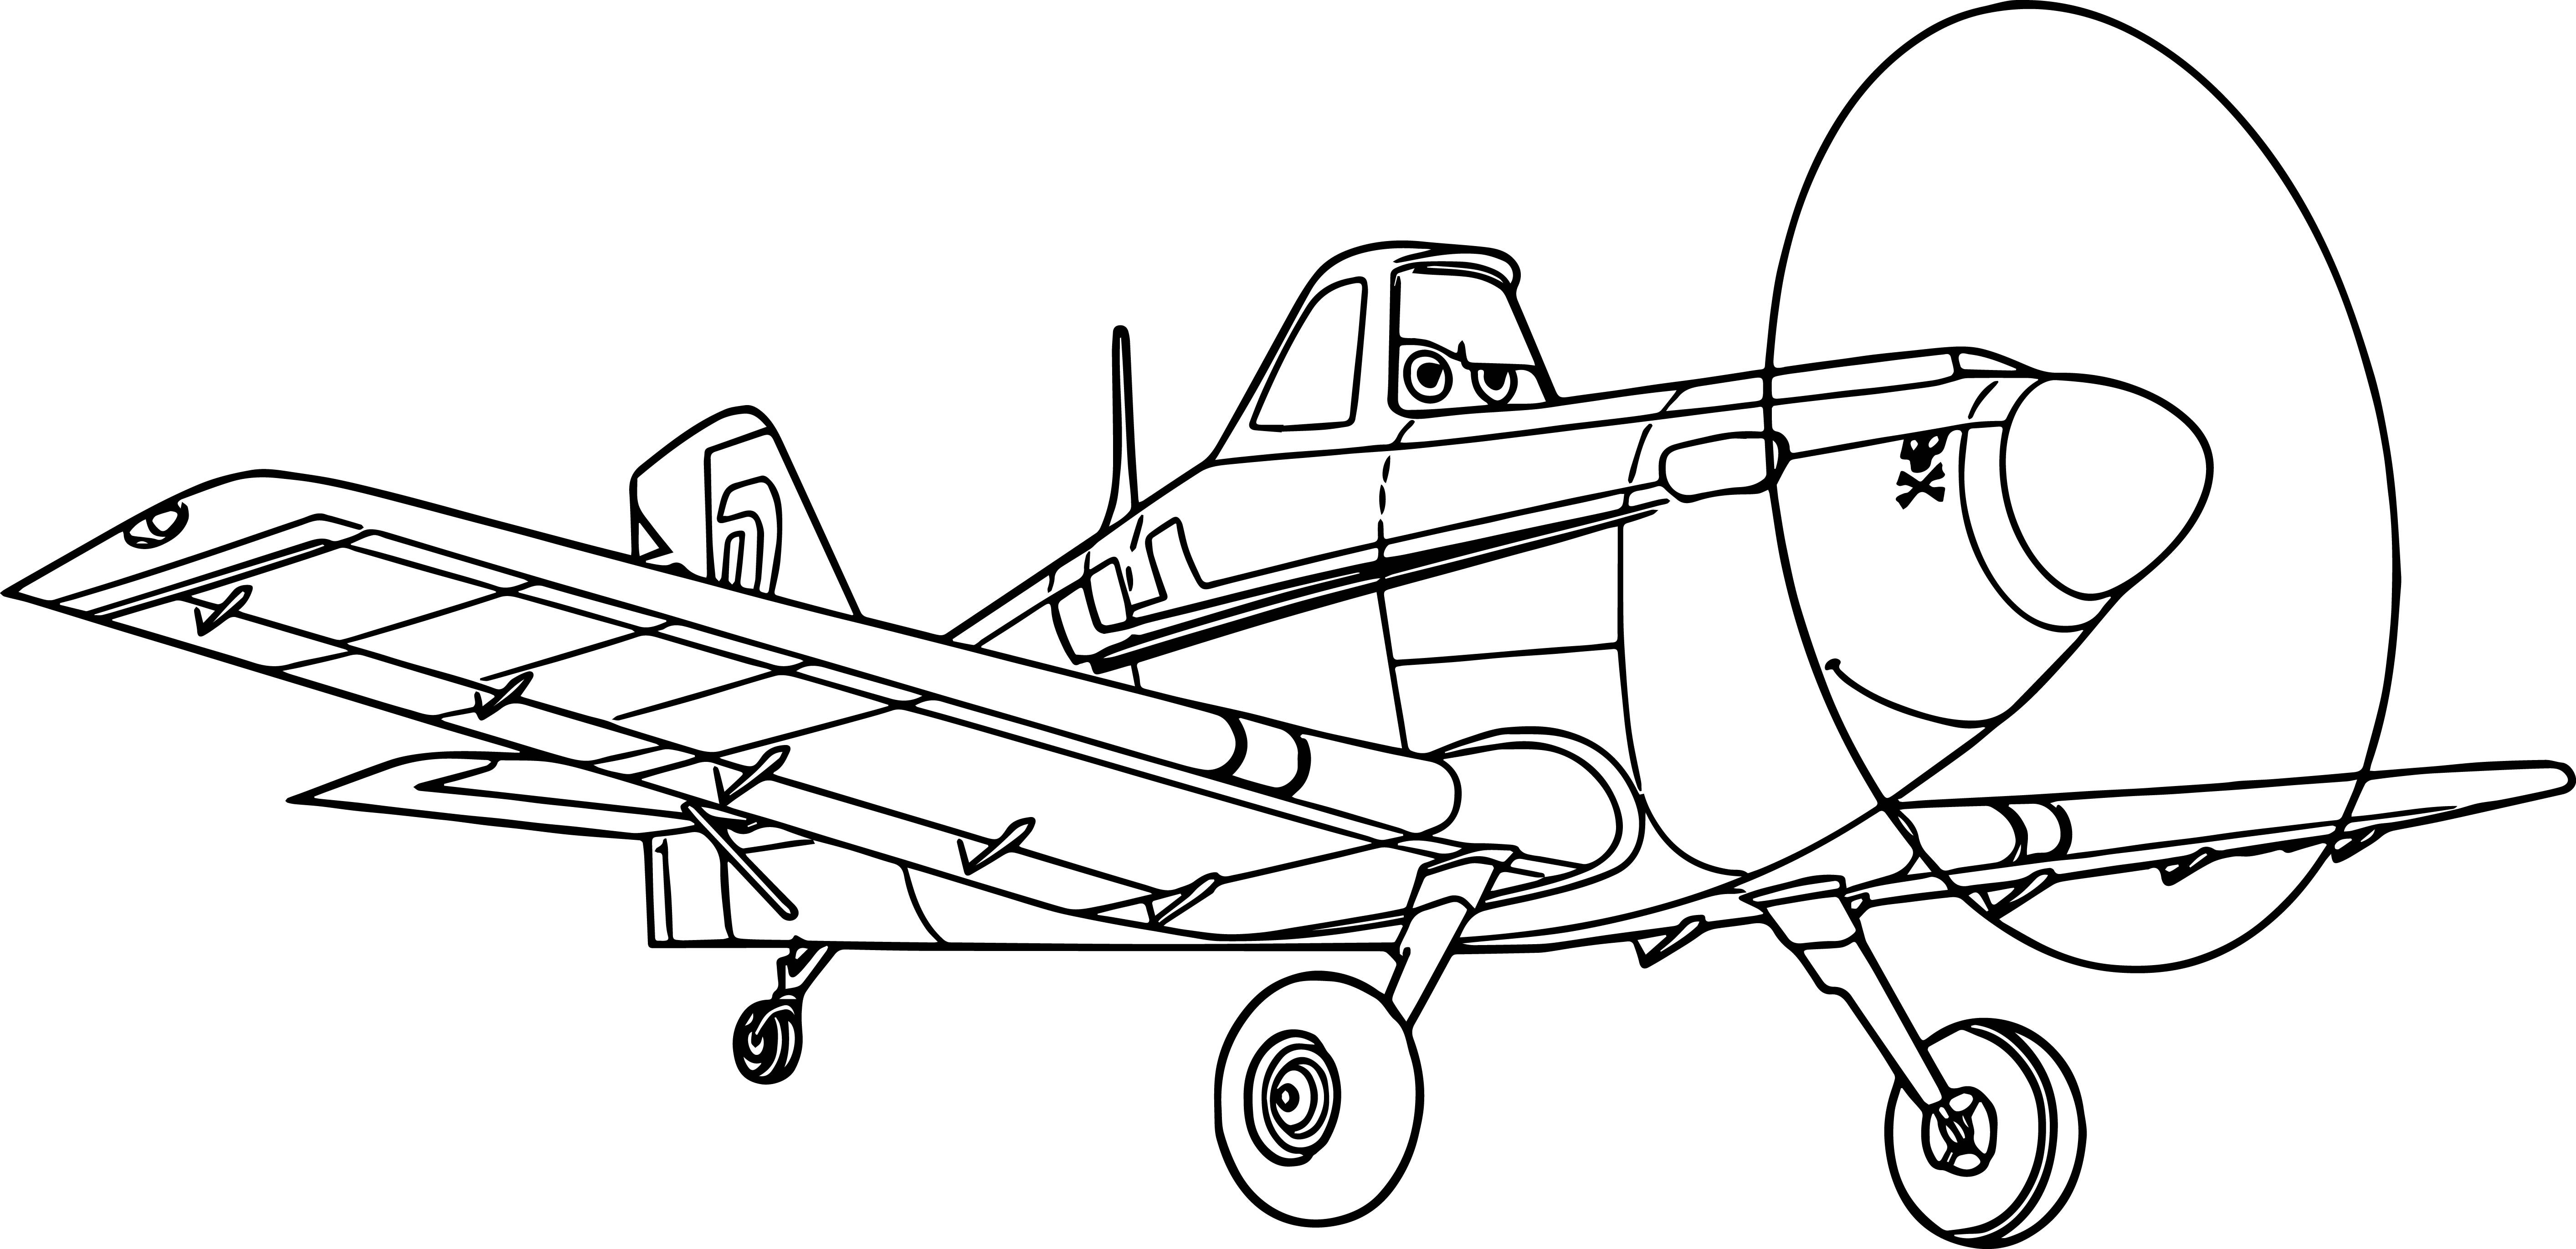 5654x2741 Plane Dusty Coloring Pages For Kids New Perfect Ideas Plane